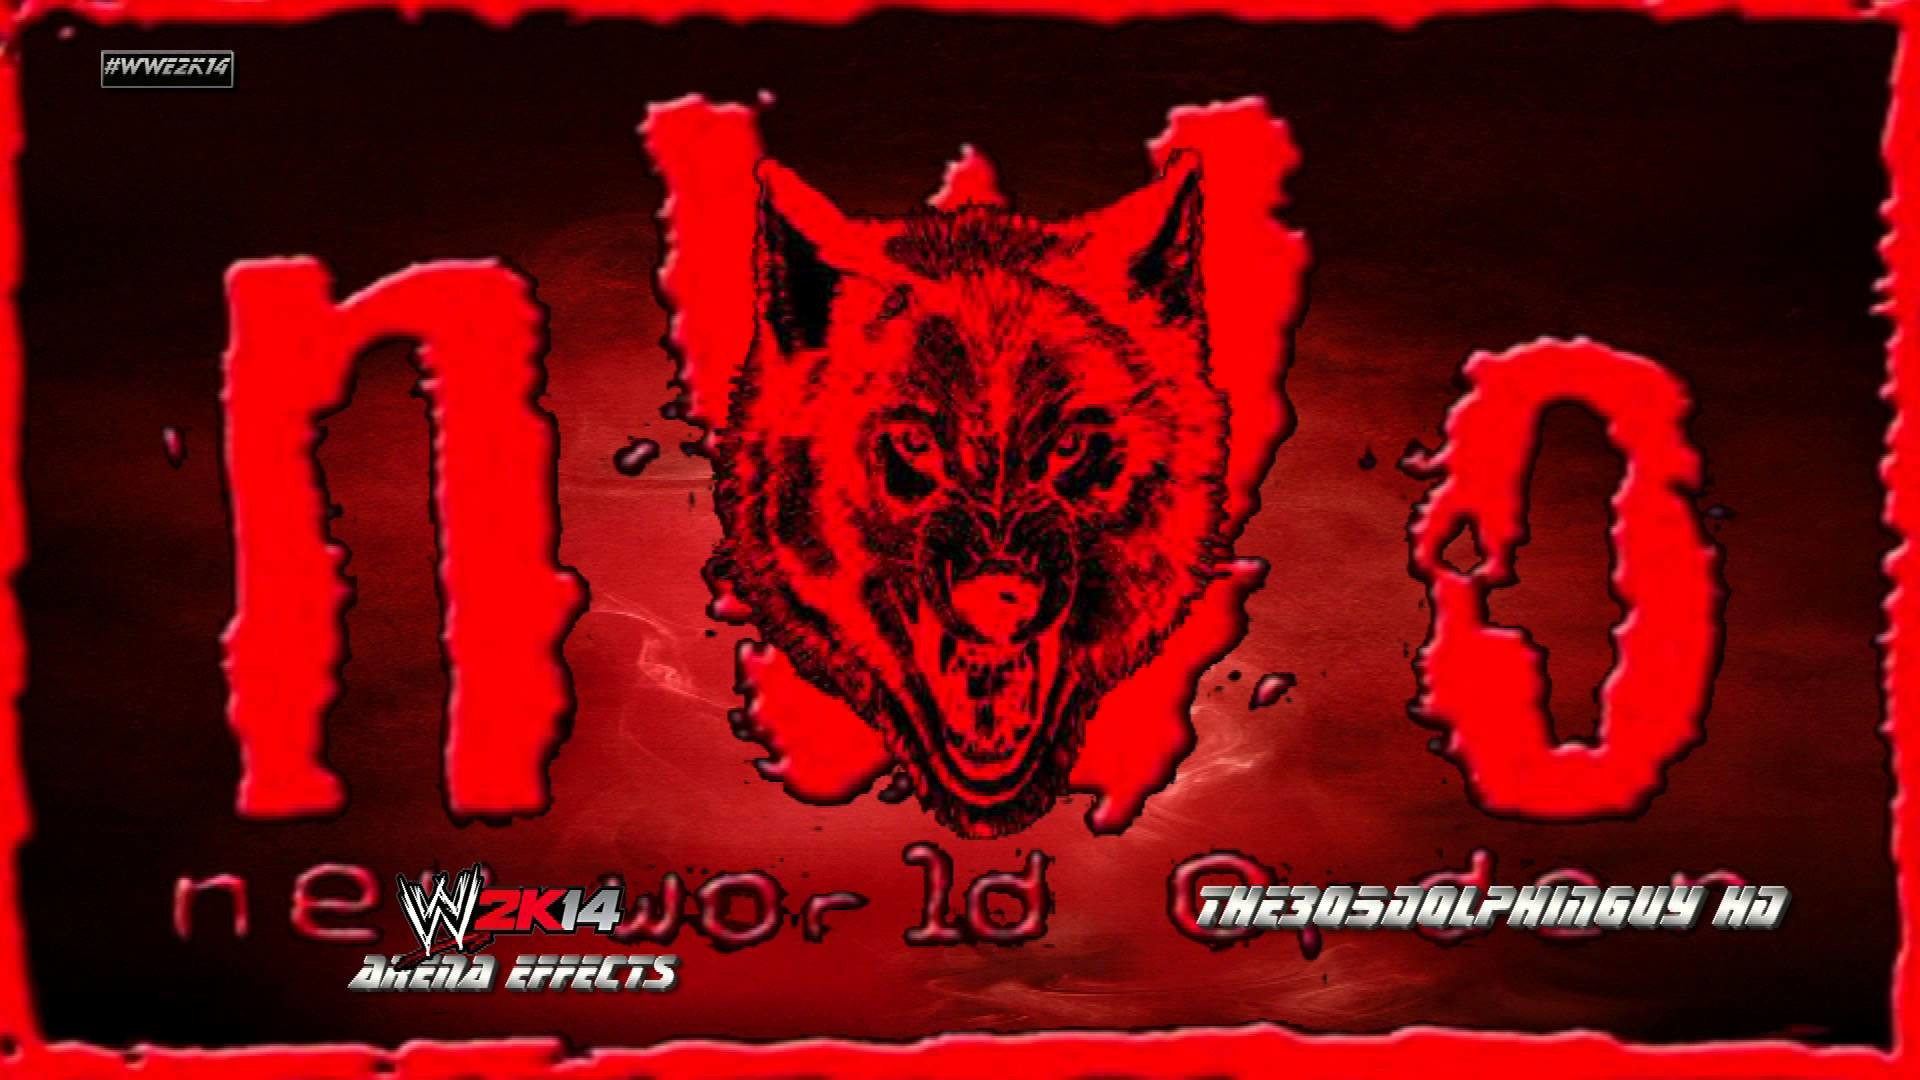 1920x1080 Wolfpack wallpaper ForWallpapercom 935x606. View 0. WWE 2K14 nWo WolfpacnWo  Elite 1st Theme Wolfpac Theme HQ Arena